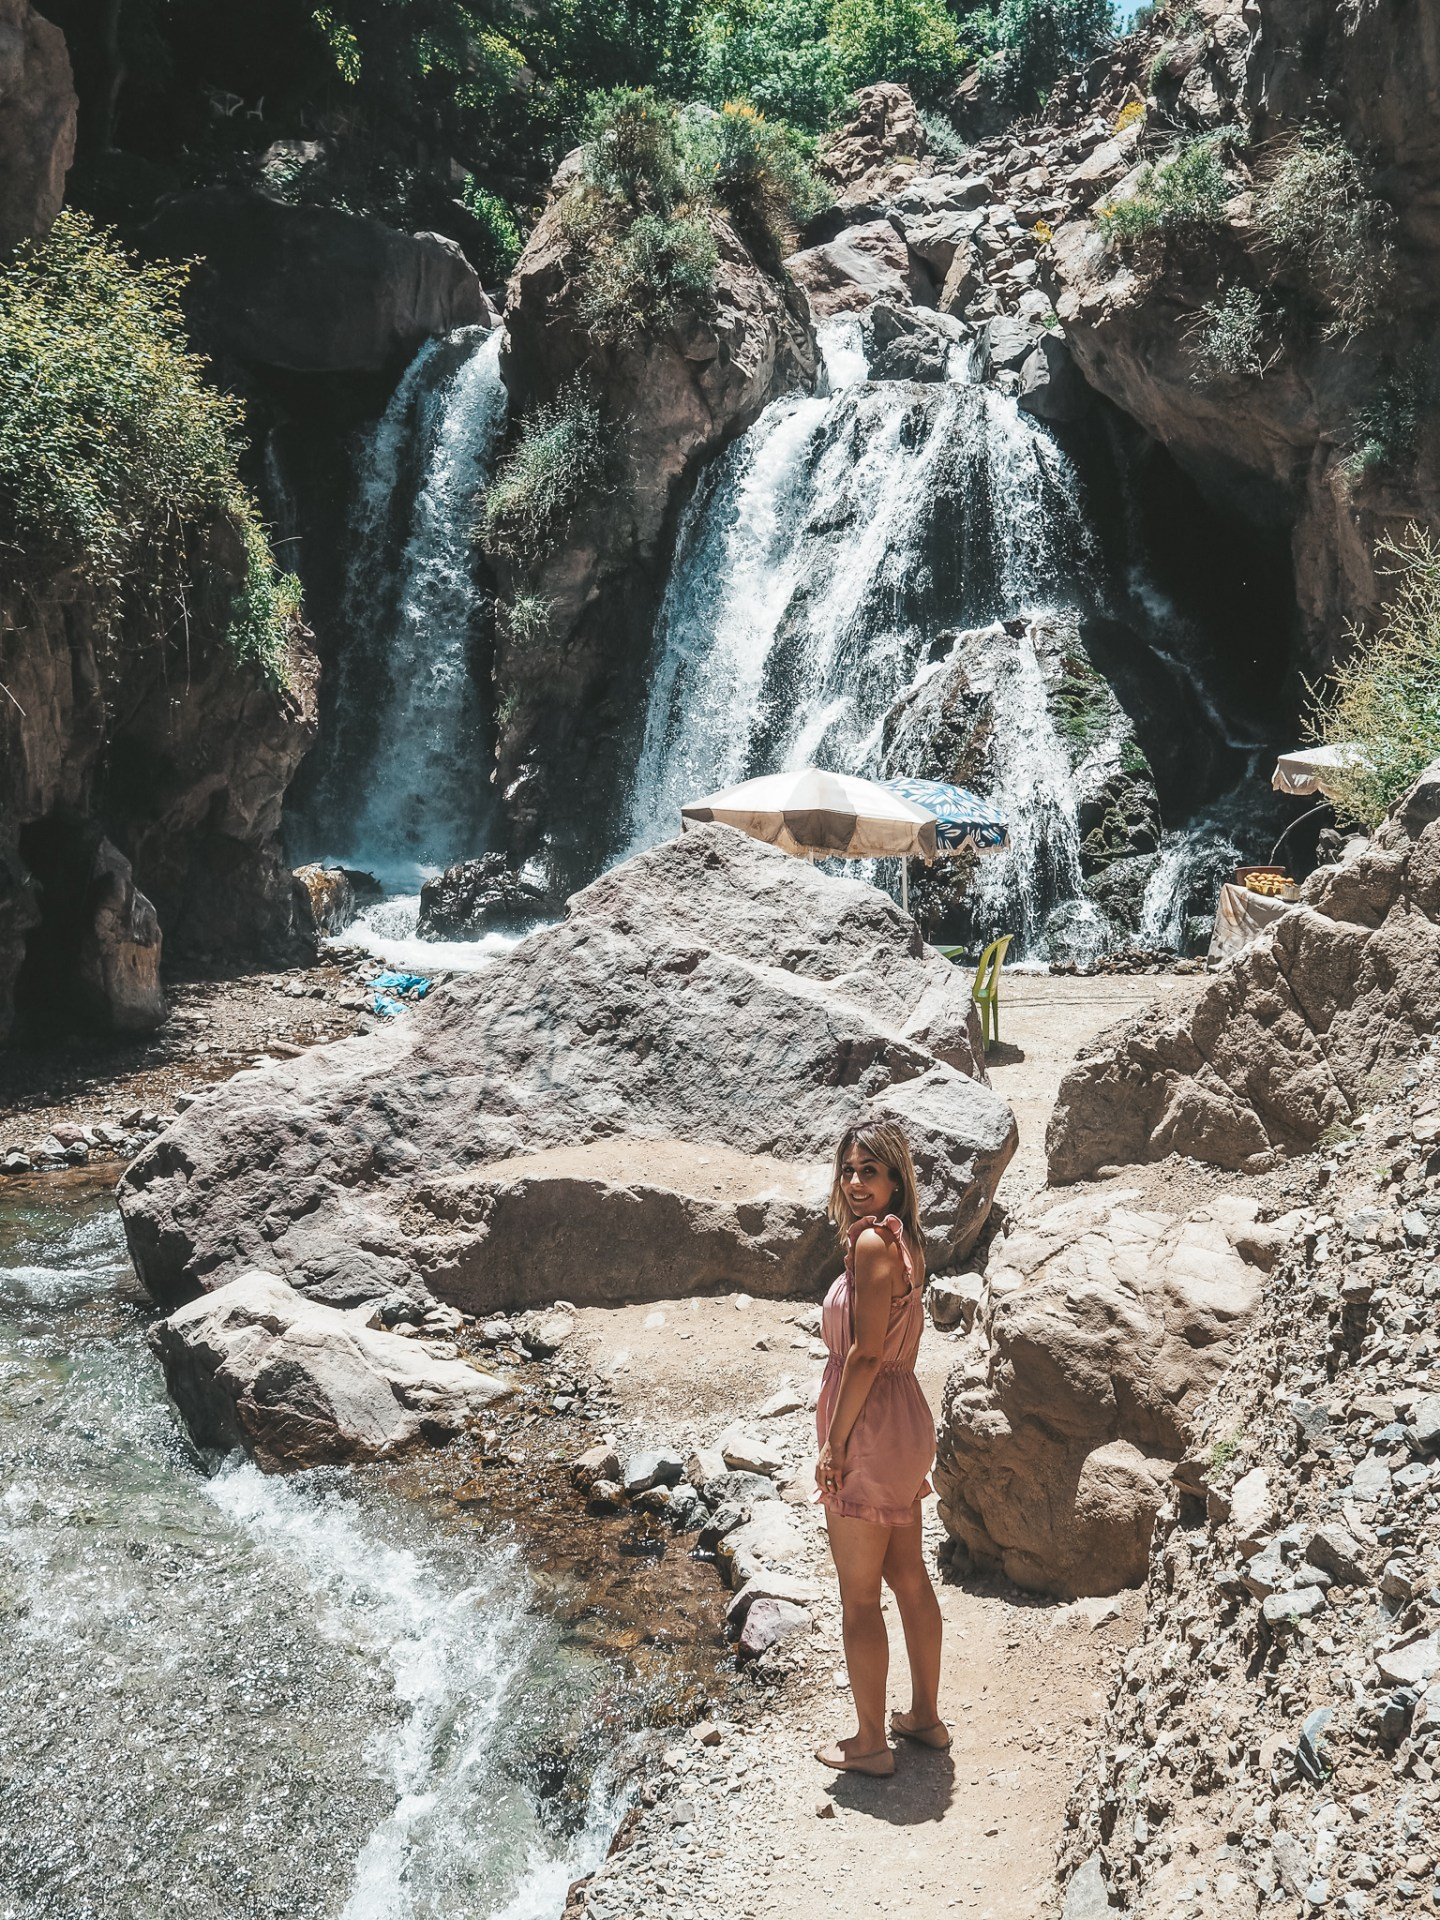 Come away with me on a tour of the Atlas Mountains just an hour and a half outside of Marrakech, in Berber territory, Morocco.  Featuring some beautiful shots of waterfalls and Imlil valley. #morocco #atlasmountains #marrakech #berber